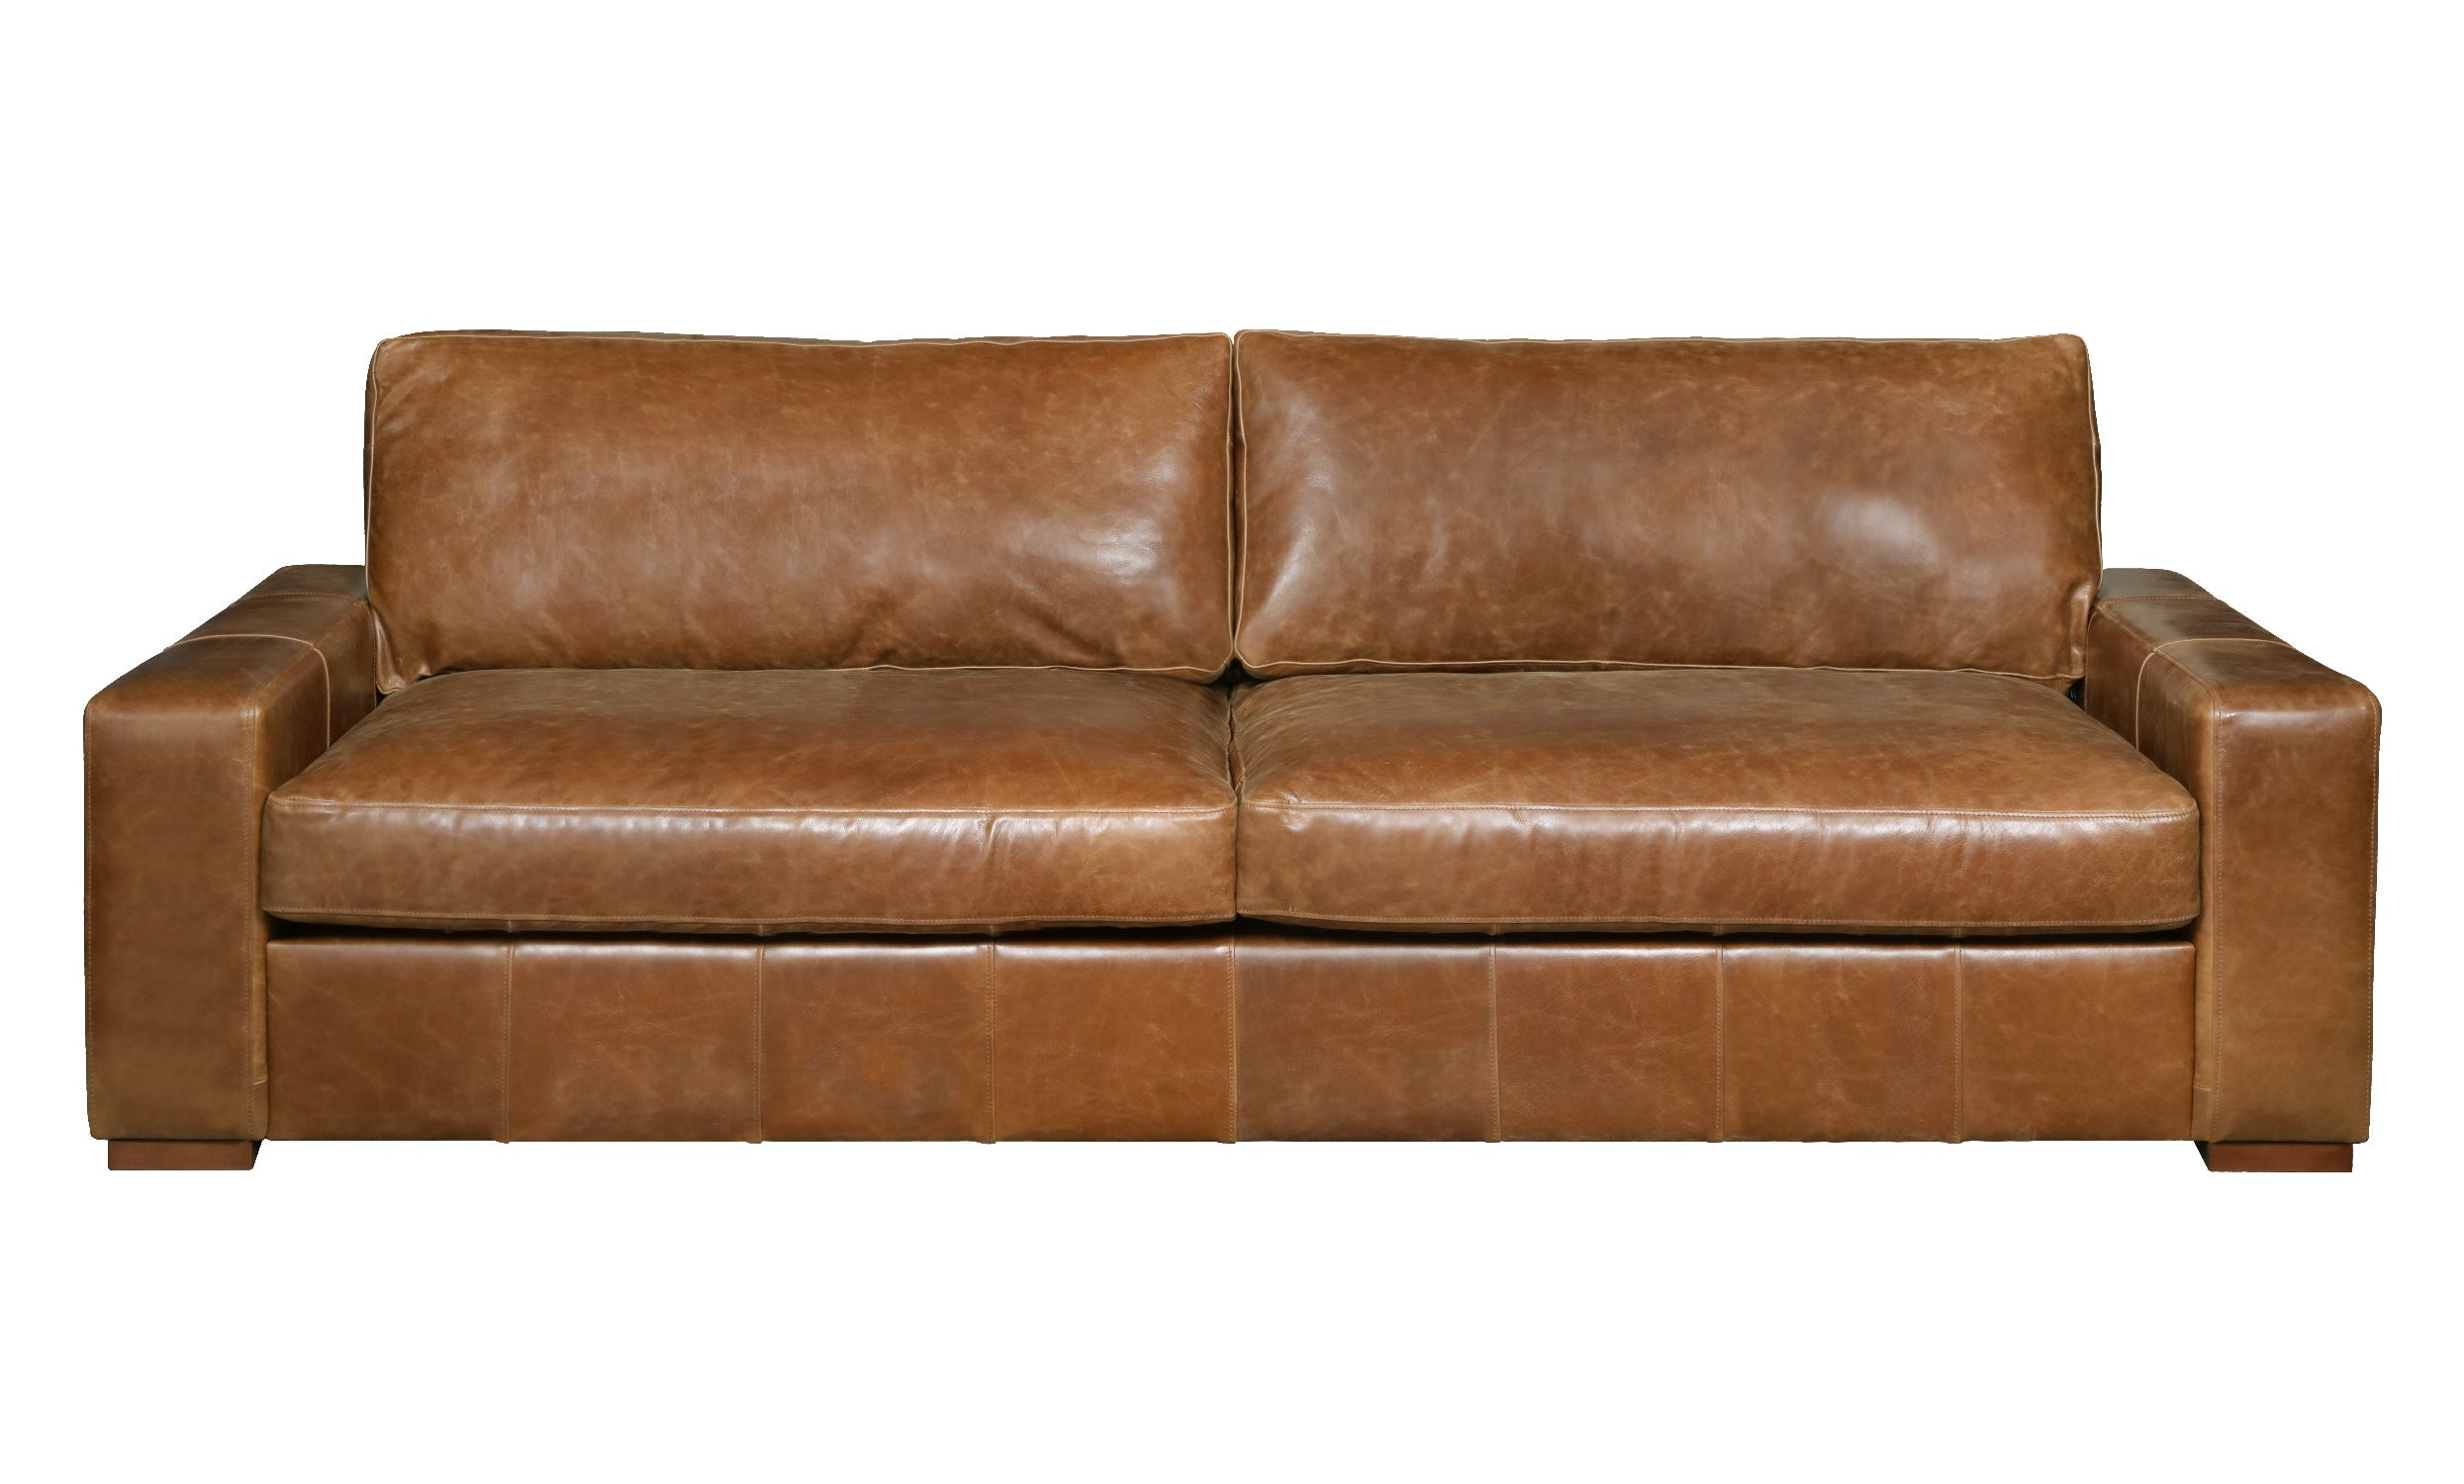 Maximus Full Aniline Leather Sofas-harris tweed leather sofas-Against The Grain Furniture-4 seater-Against The Grain Furniture